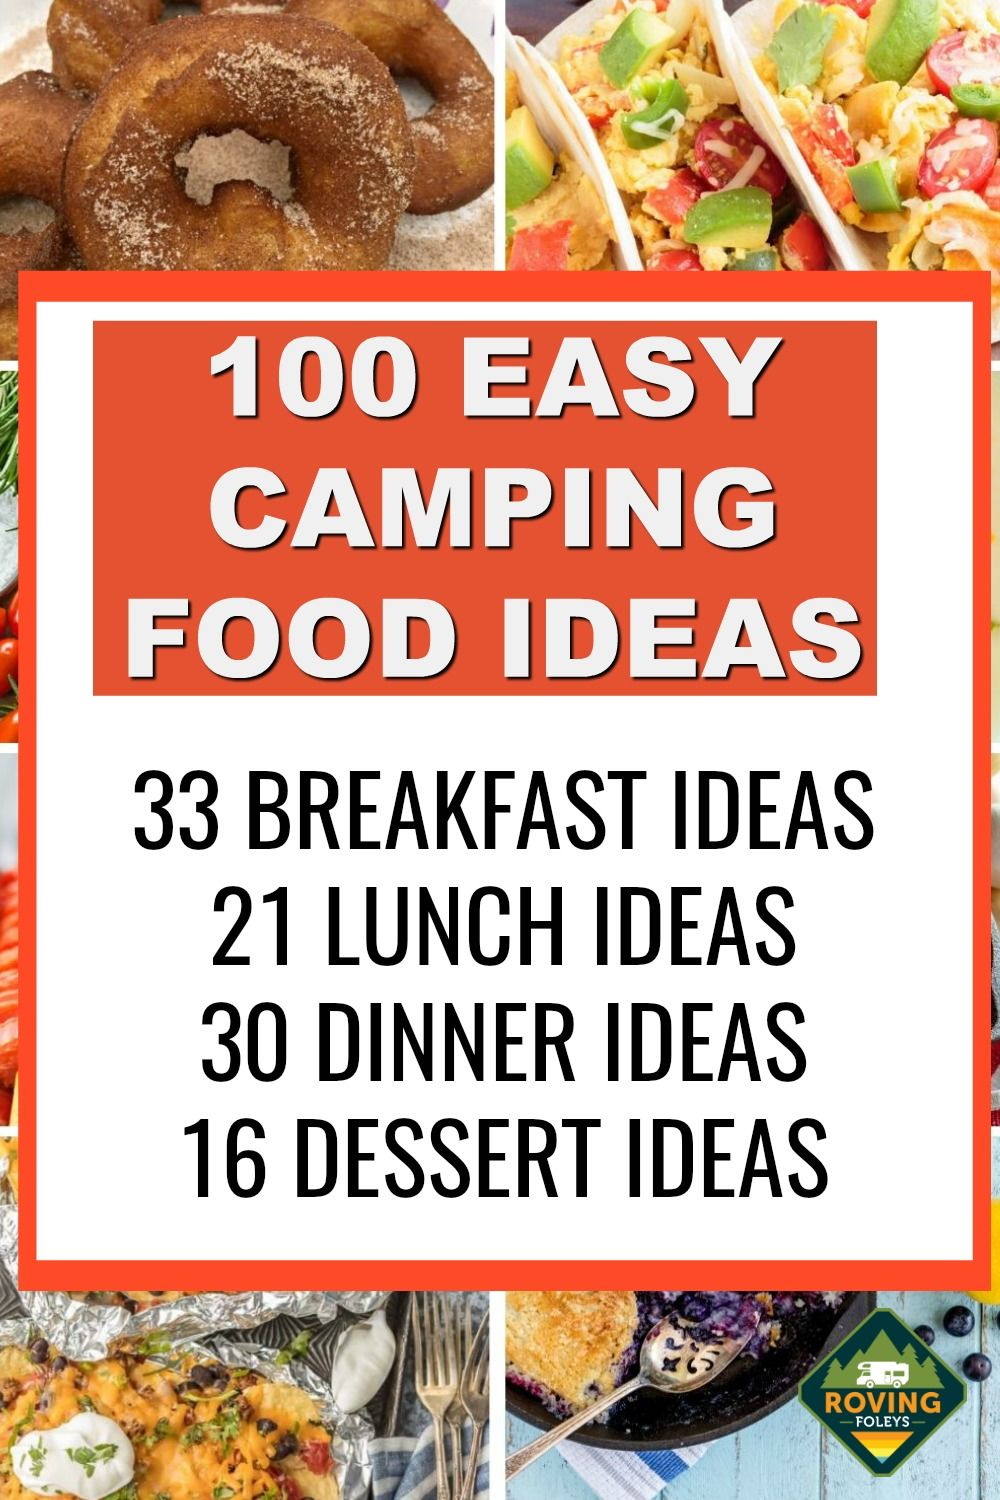 100 Camping Meals The Envy Of The Campground The Roving Foley S In 2020 Easy Camping Meals Camping Meals Camping Food List